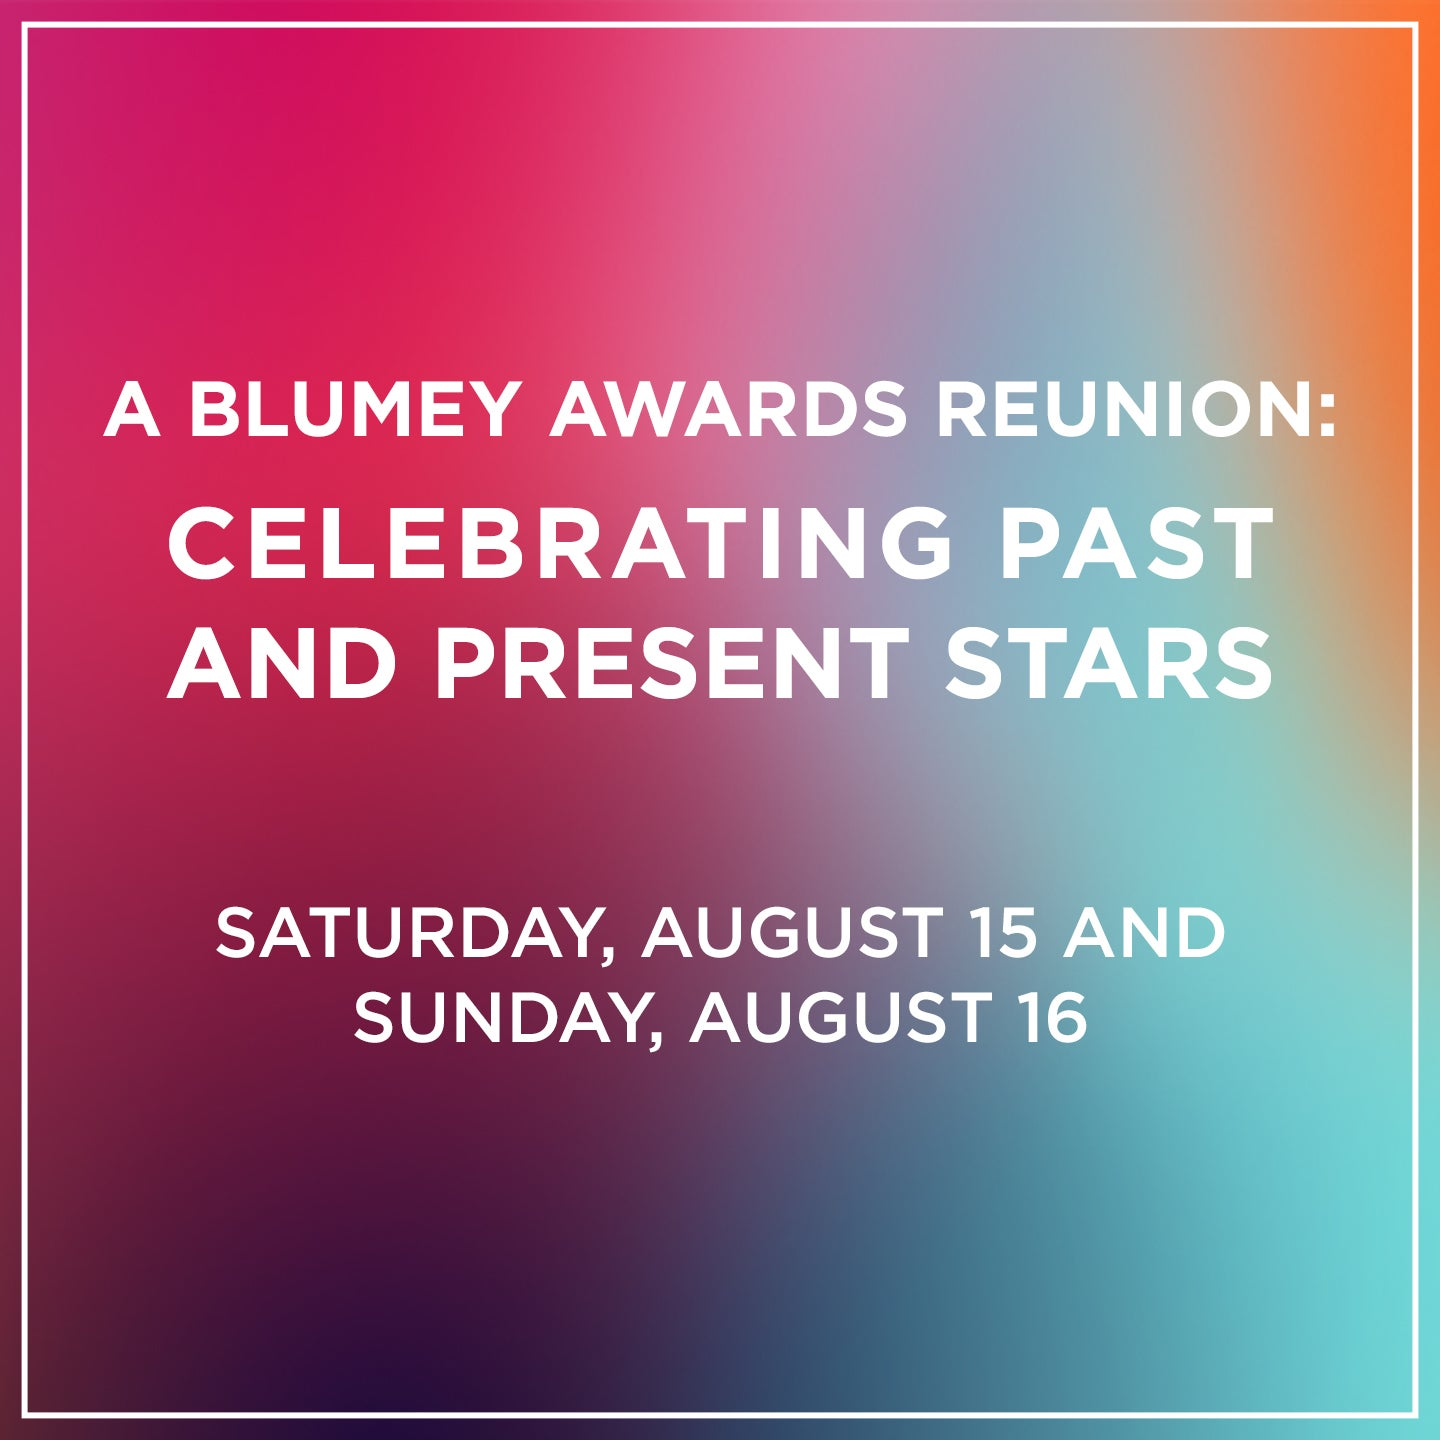 A Blumey Awards Reunion: Celebrating Past and Present Stars